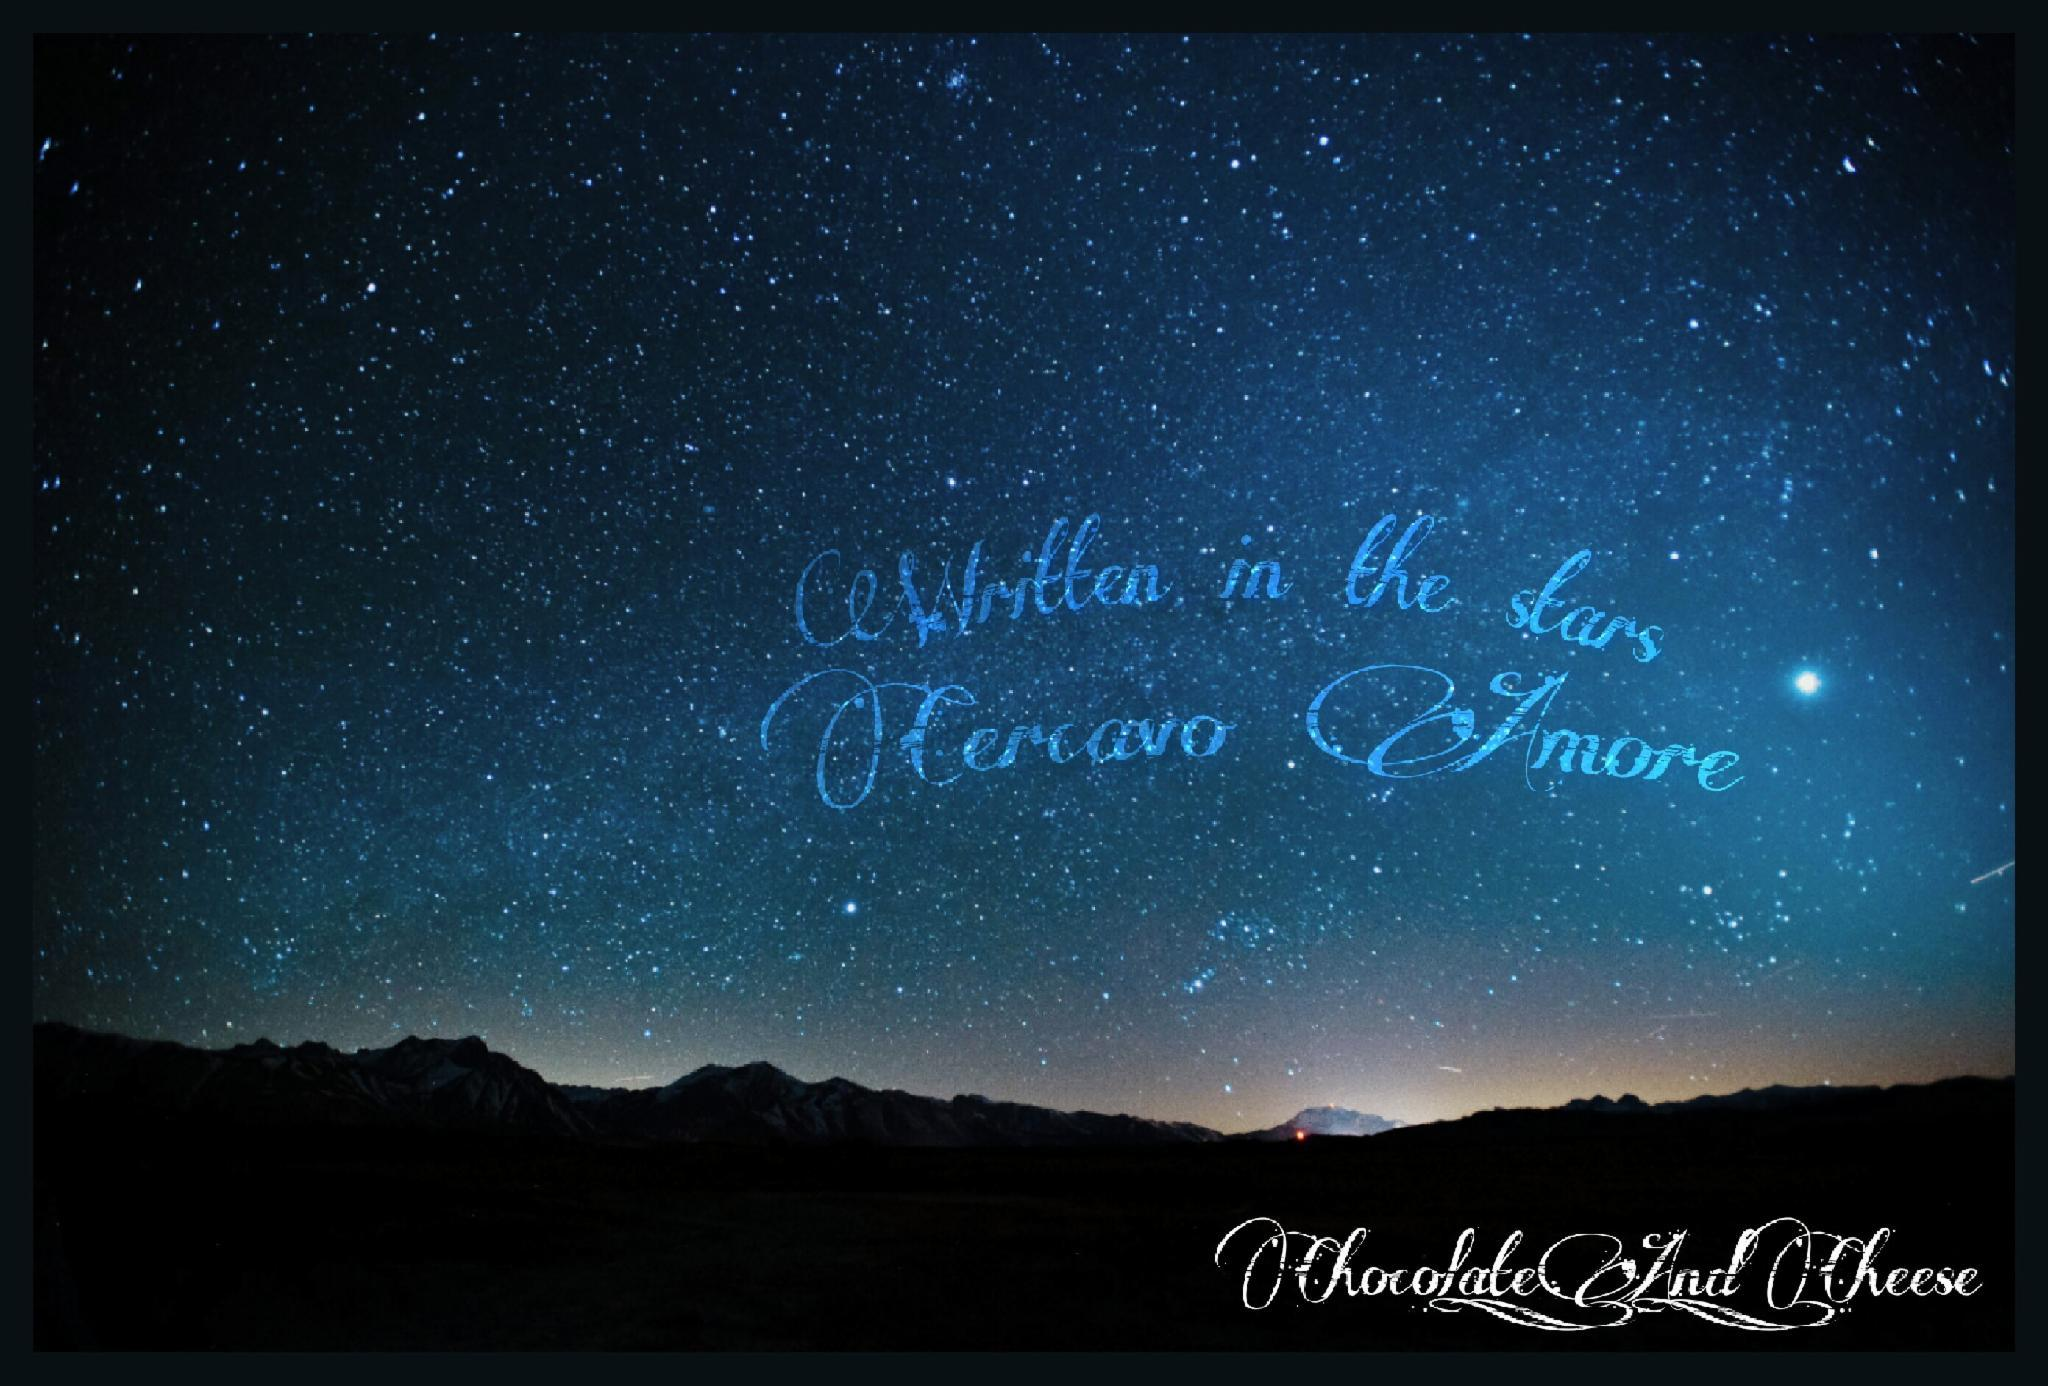 Written in the stars: Cercavo Amore